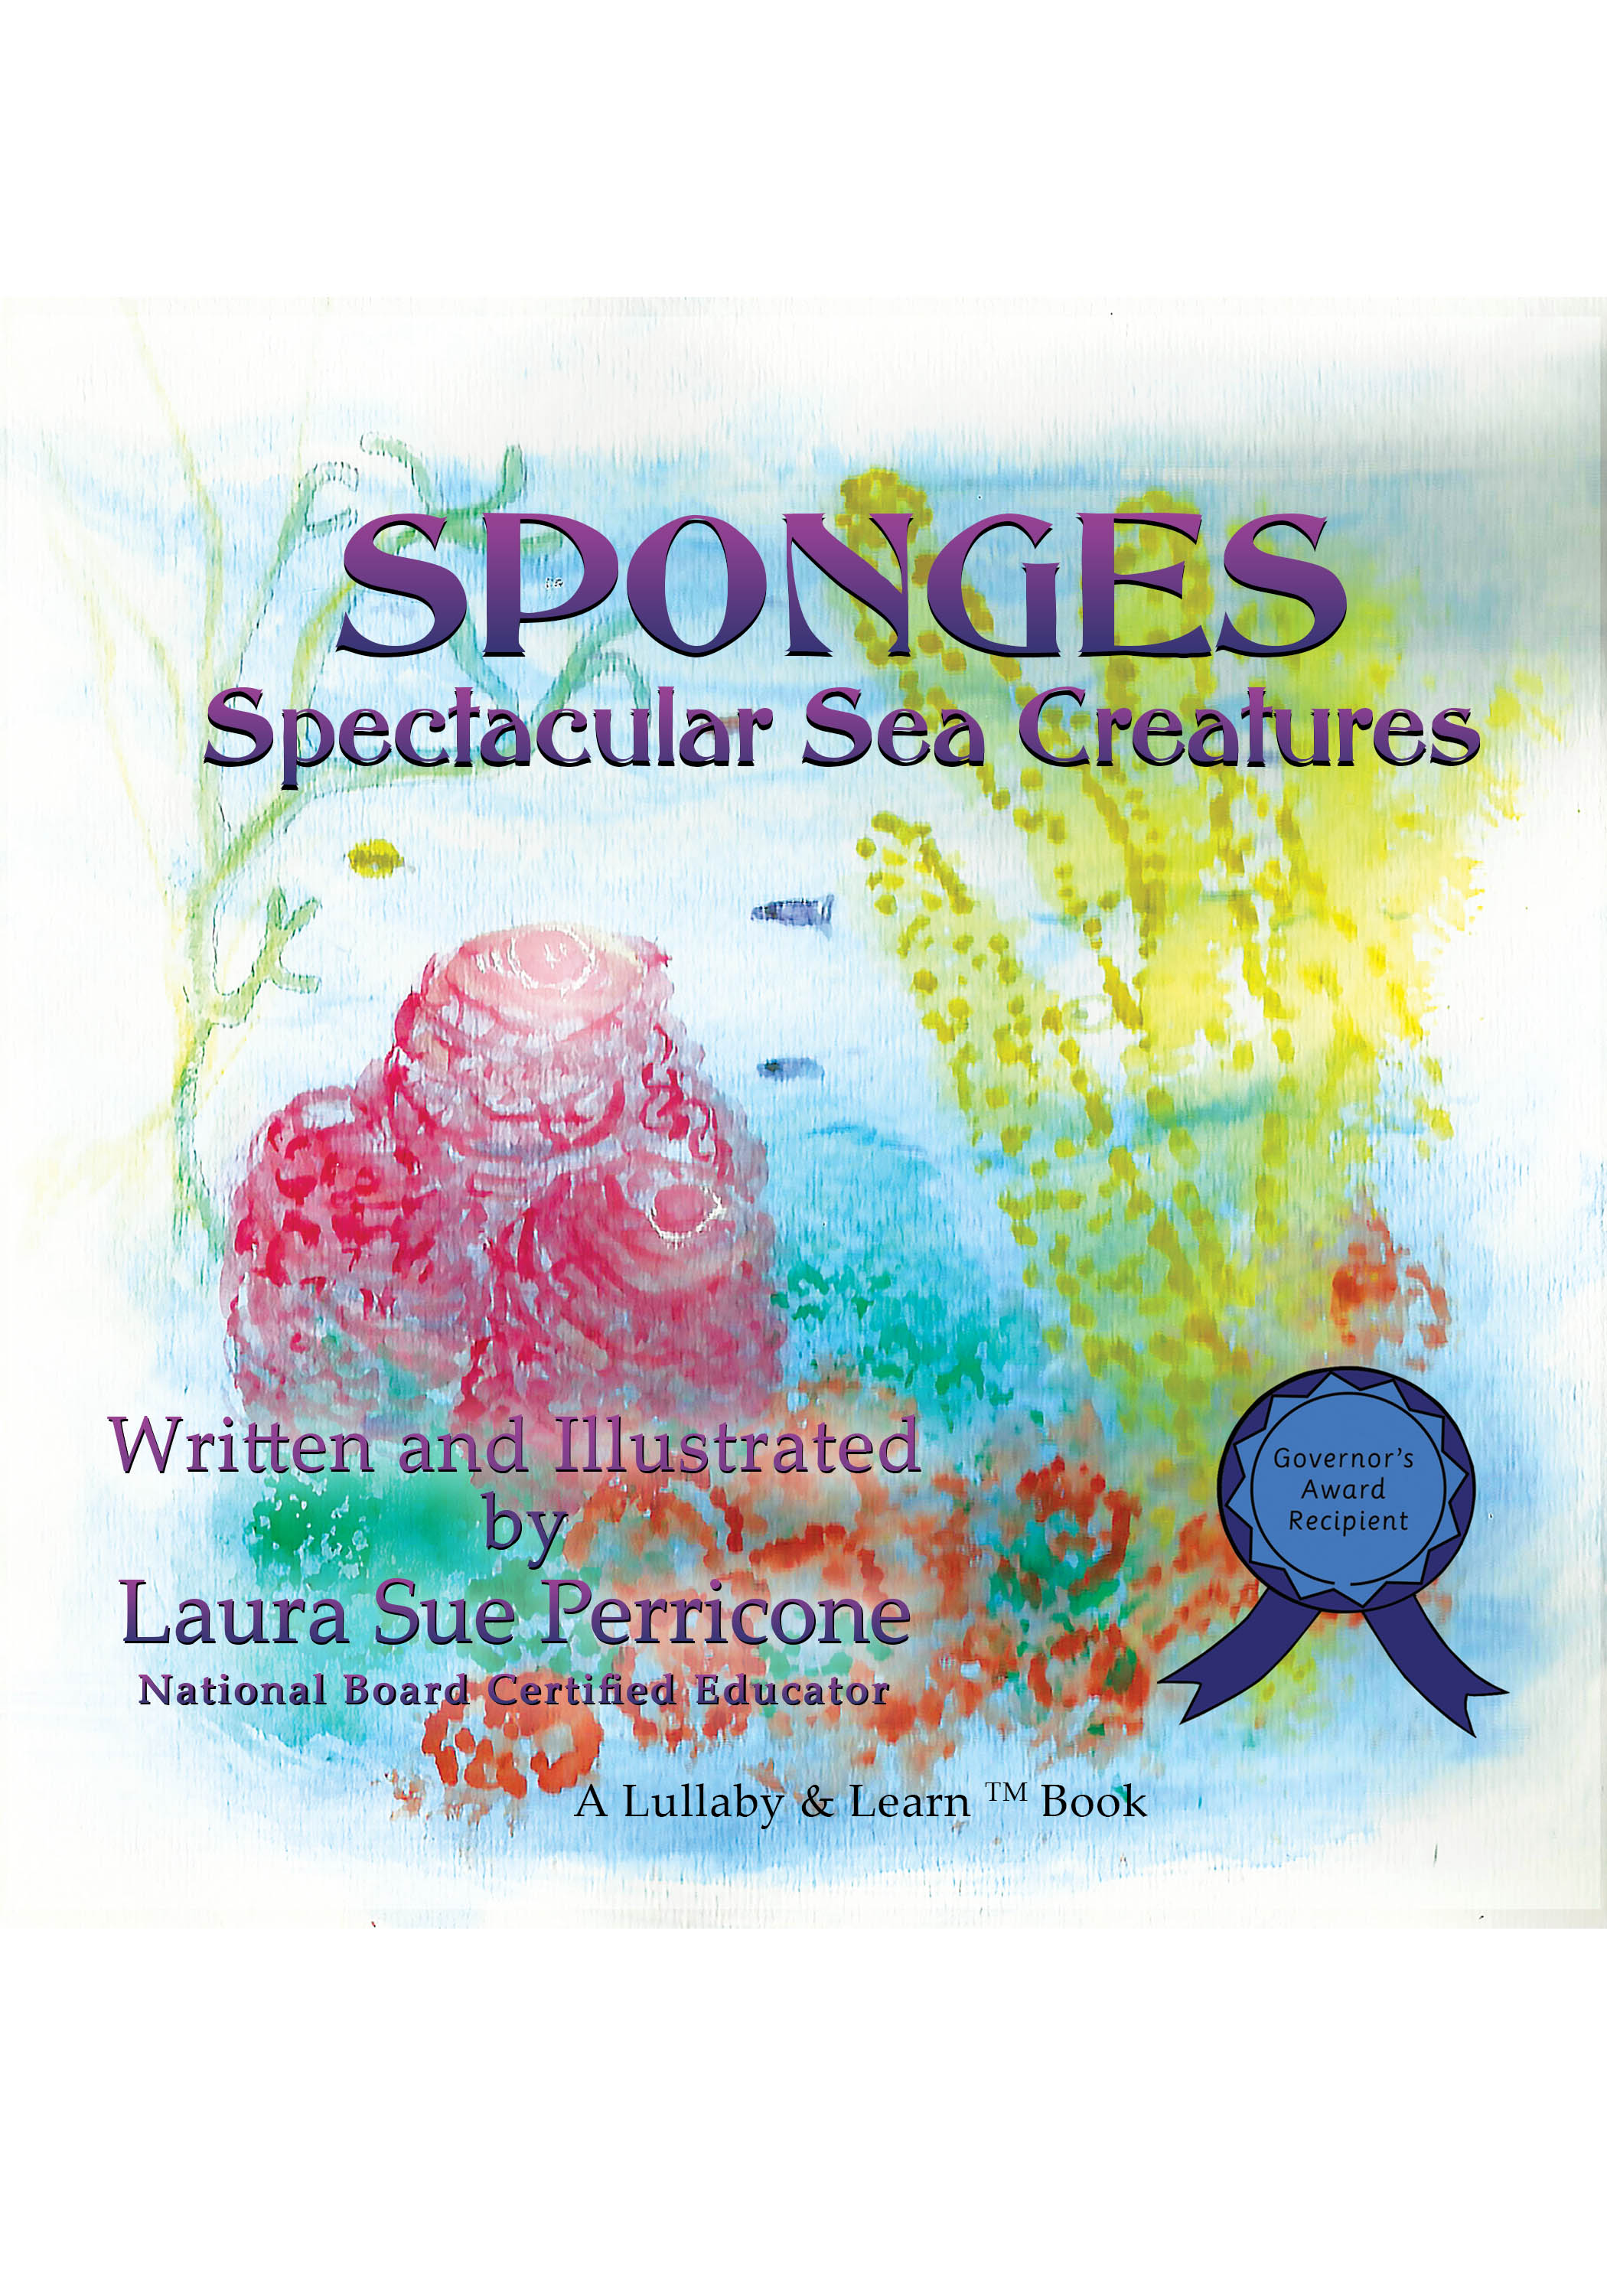 Sponges: Spectacular Sea Creatures